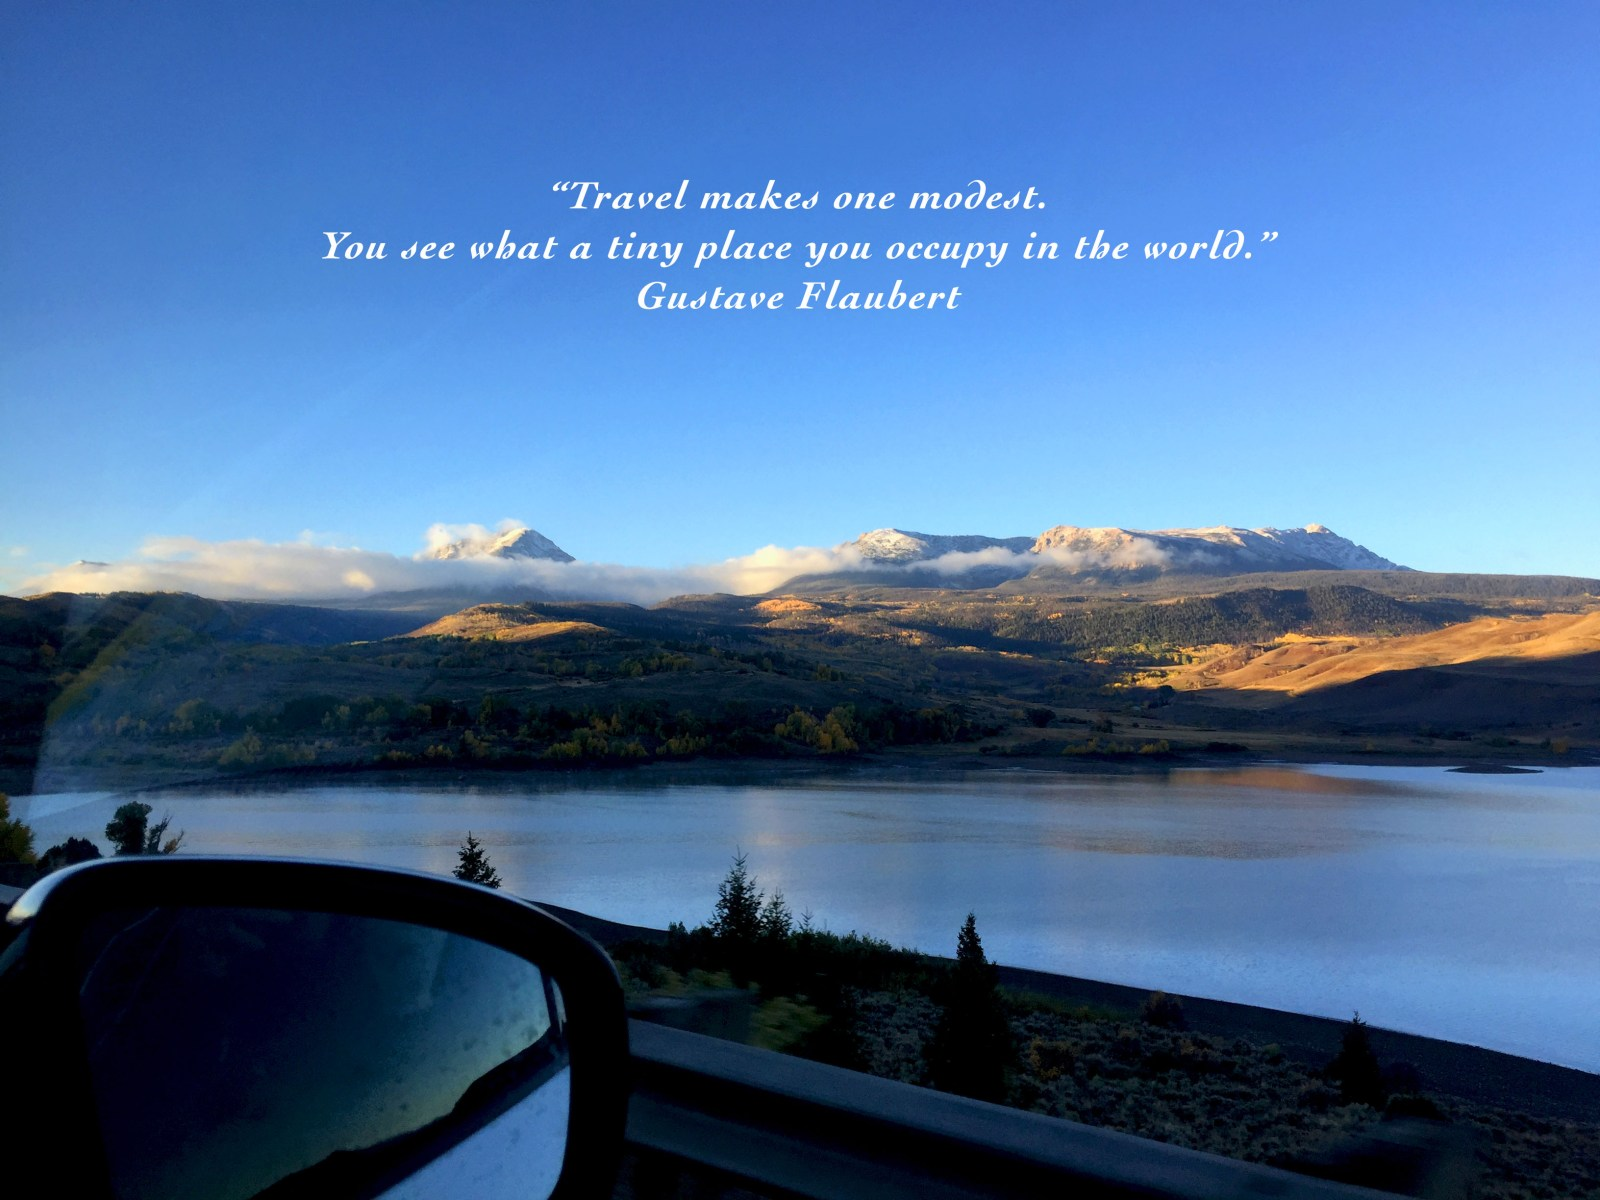 Travel Gustave Flaubert quote Colorado Reservoir Road Trip Spontaneous Freedom Wandering Soul Dirty Windshield